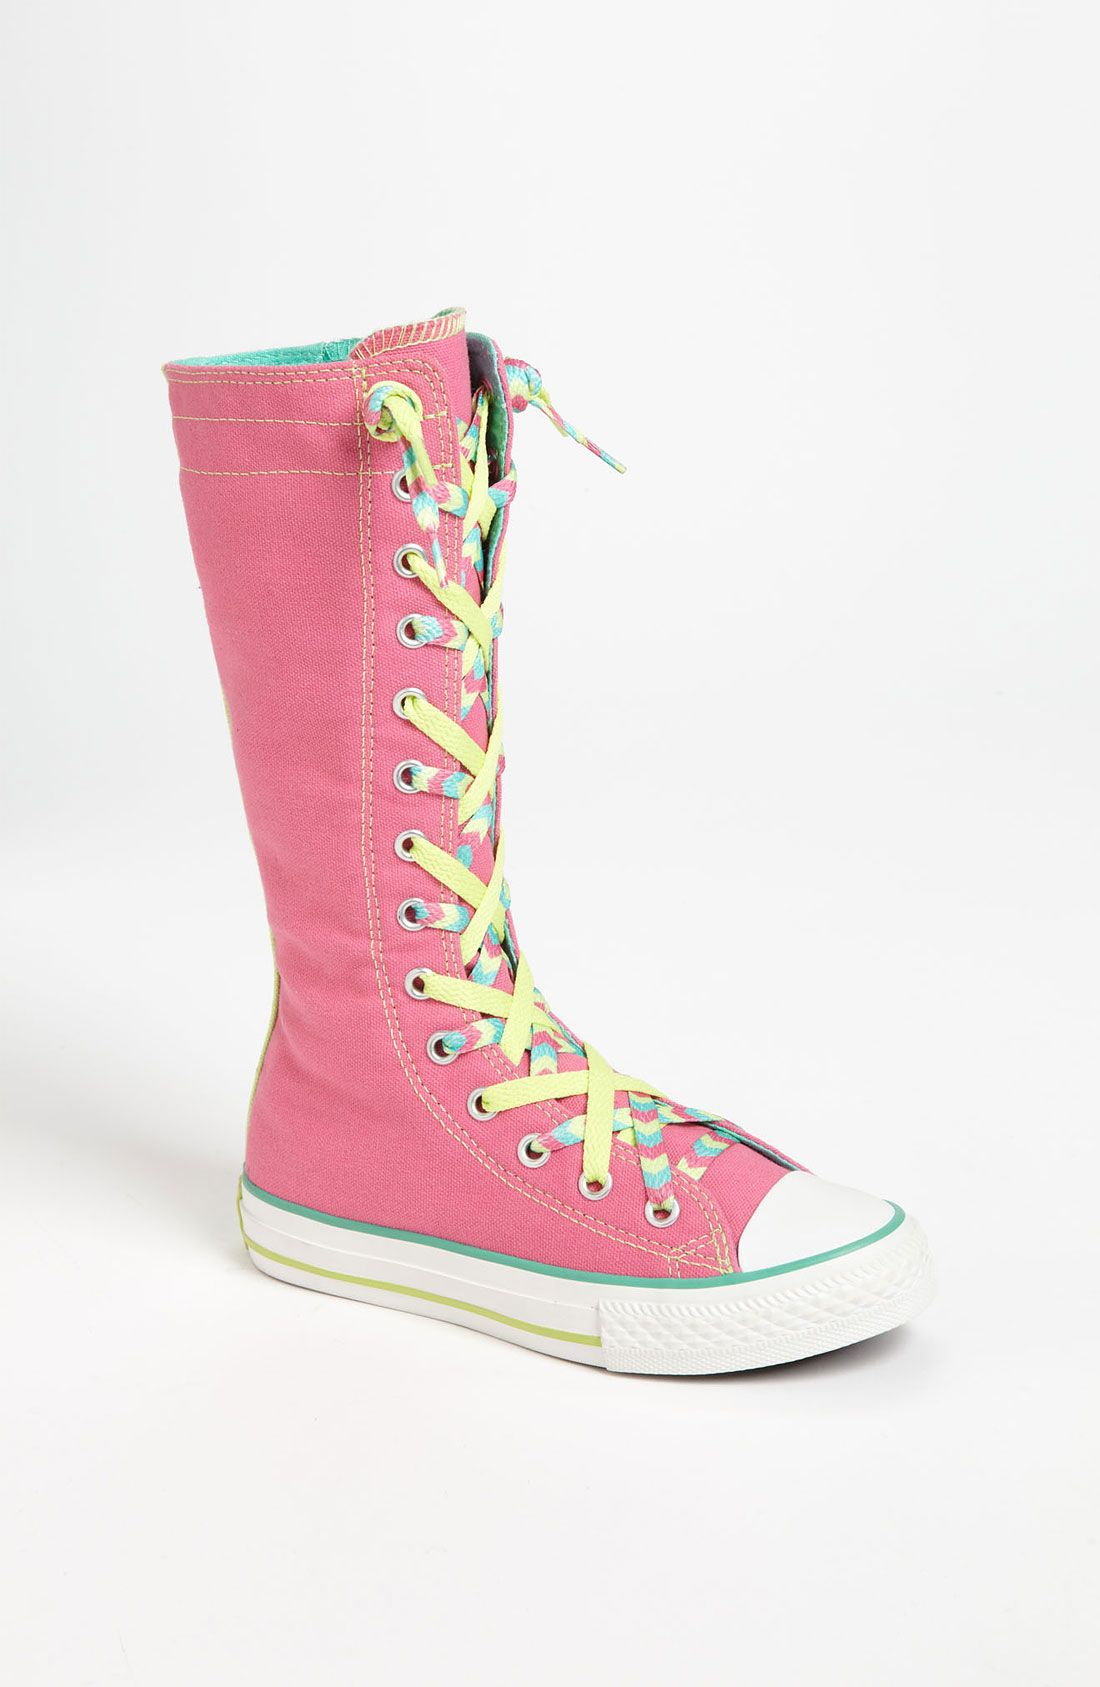 pink converse knee high sneakers size